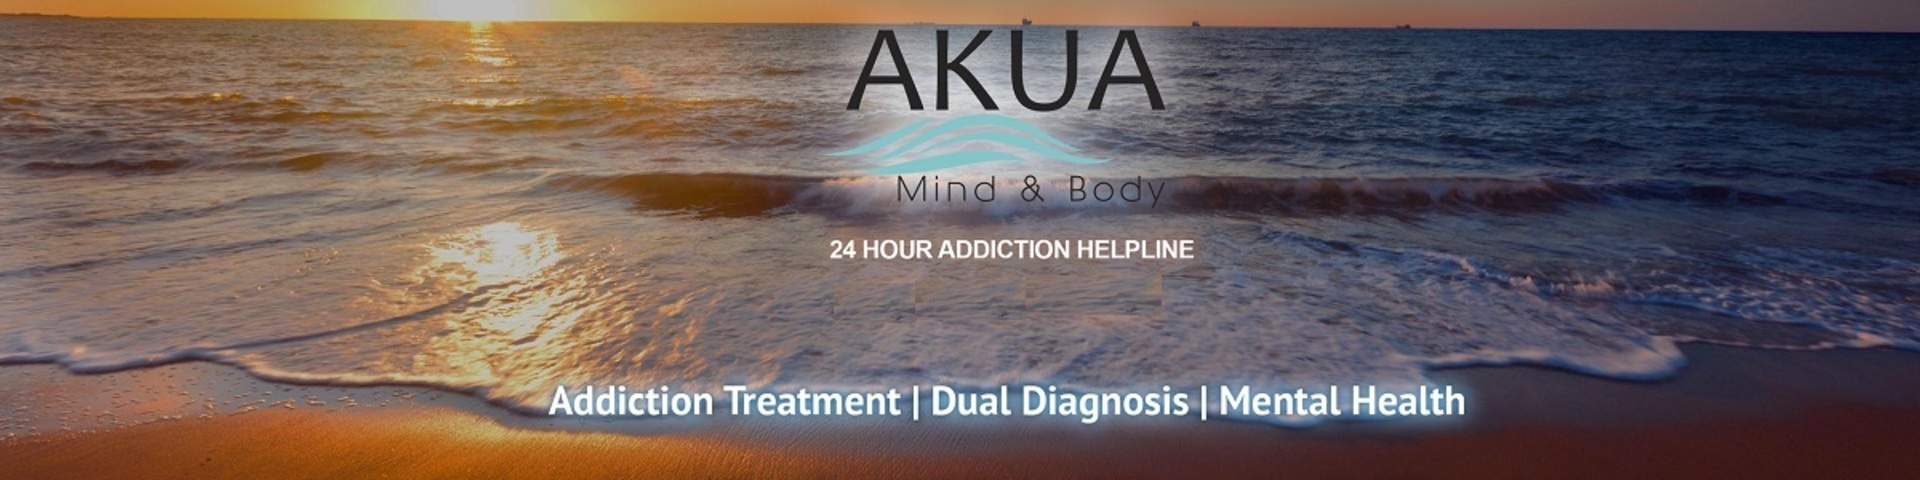 Akua Mind Body Newport Beach